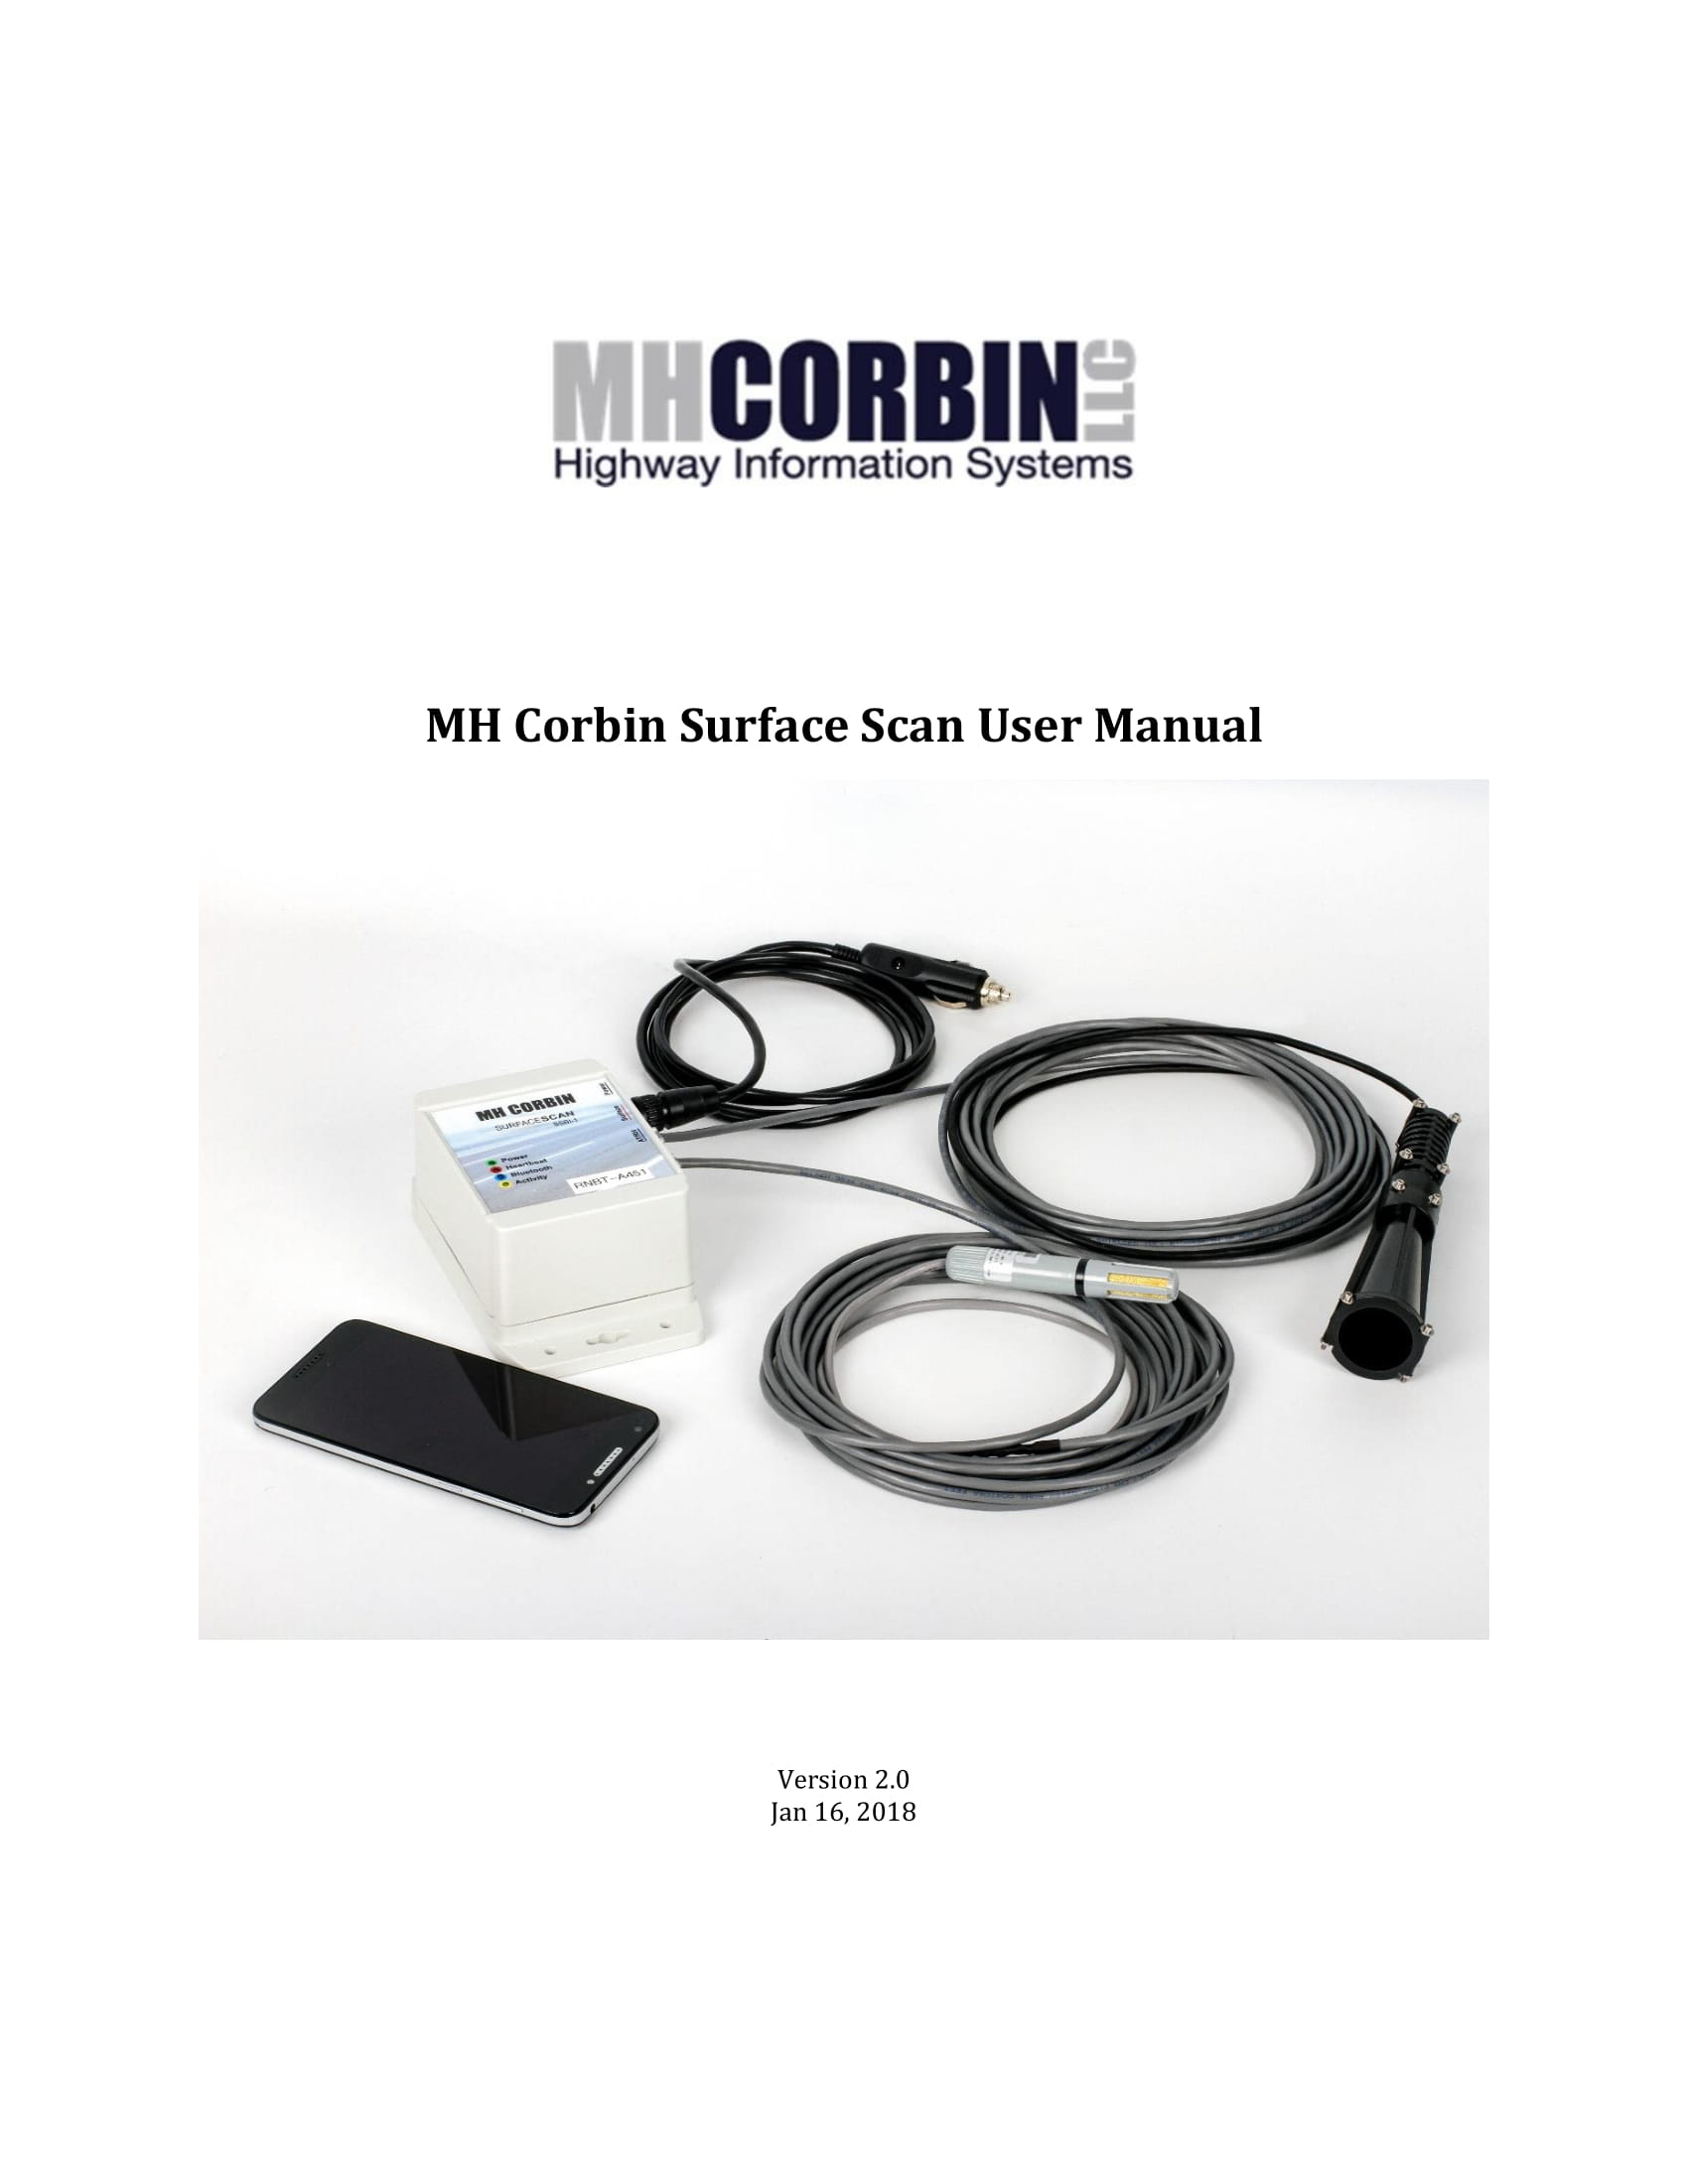 MH Corbin Surface Scan User Manual v1.1 (002) new cover-01.jpg